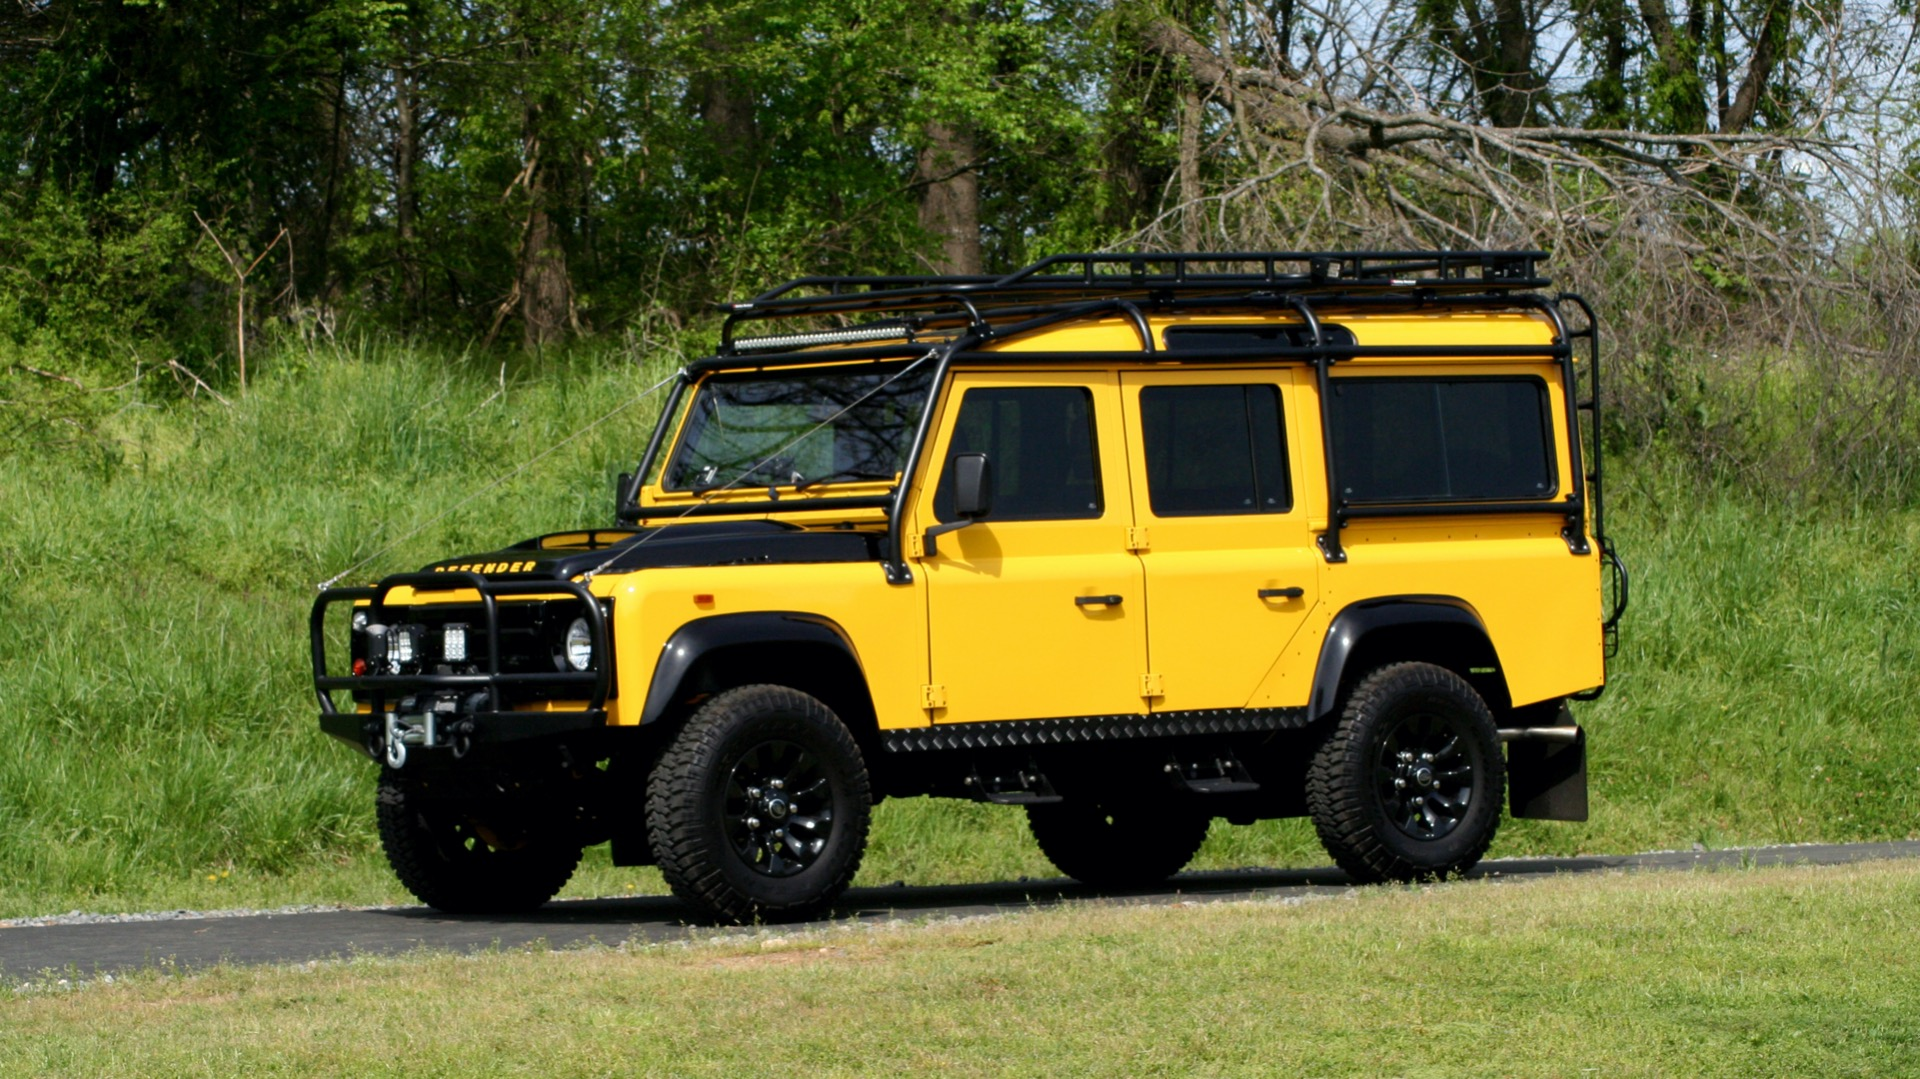 Used 1989 Land Rover Defender 110 4x4 Custom / Fully Restored / Fuel Injected V8 / 5-Spd Man for sale $60,000 at Formula Imports in Charlotte NC 28227 2